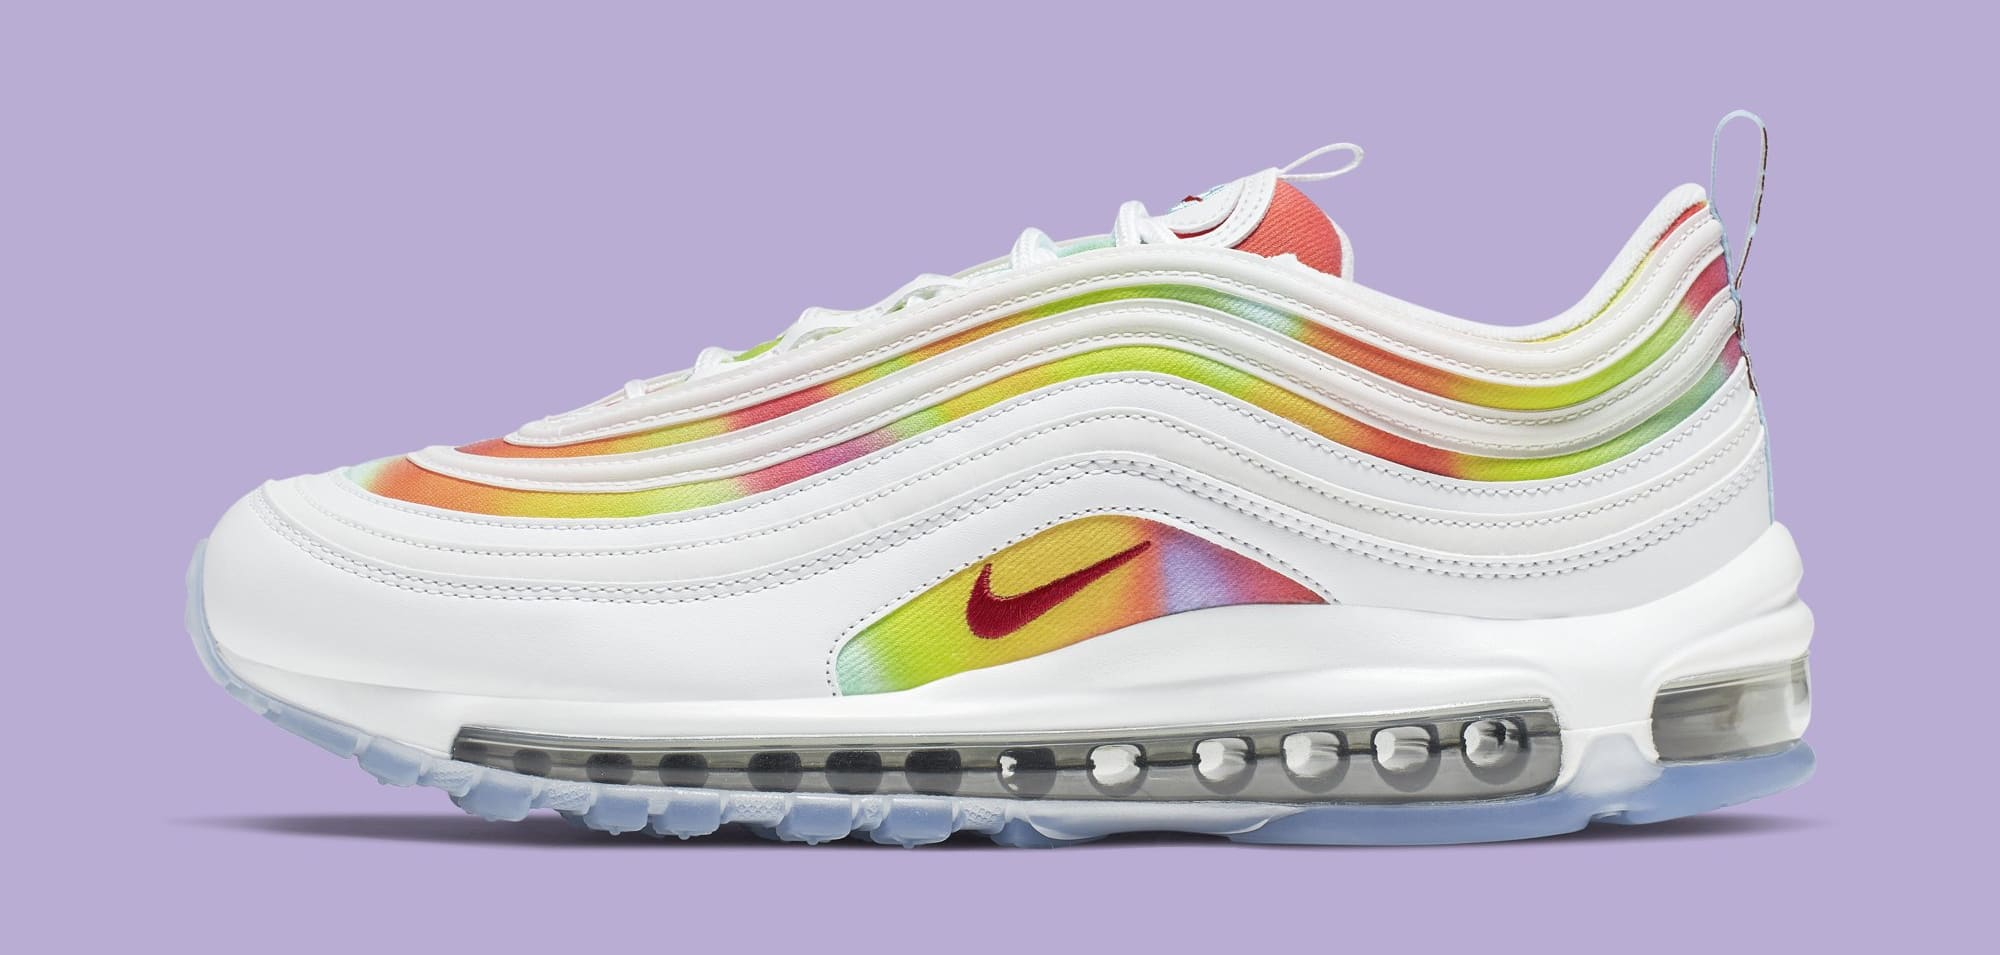 Nike Air Max 97 'Tie-Dye/Chicago' CK0839-100 (Lateral)